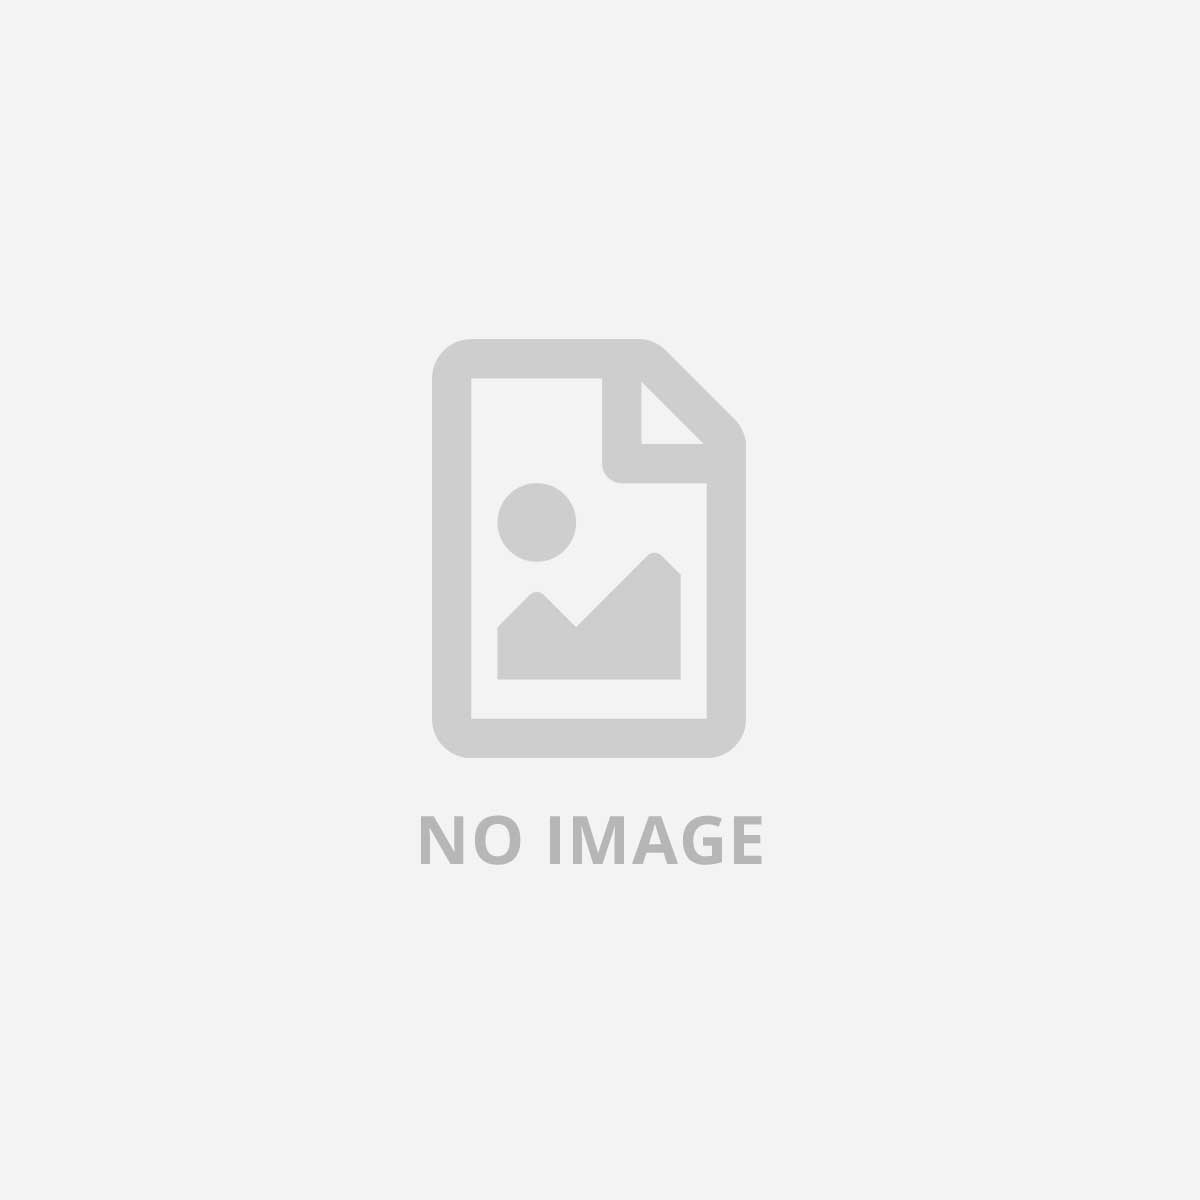 FUJIFILM DVD-RW 4 7GB 2X JEWEL CASE CONF 5PZ